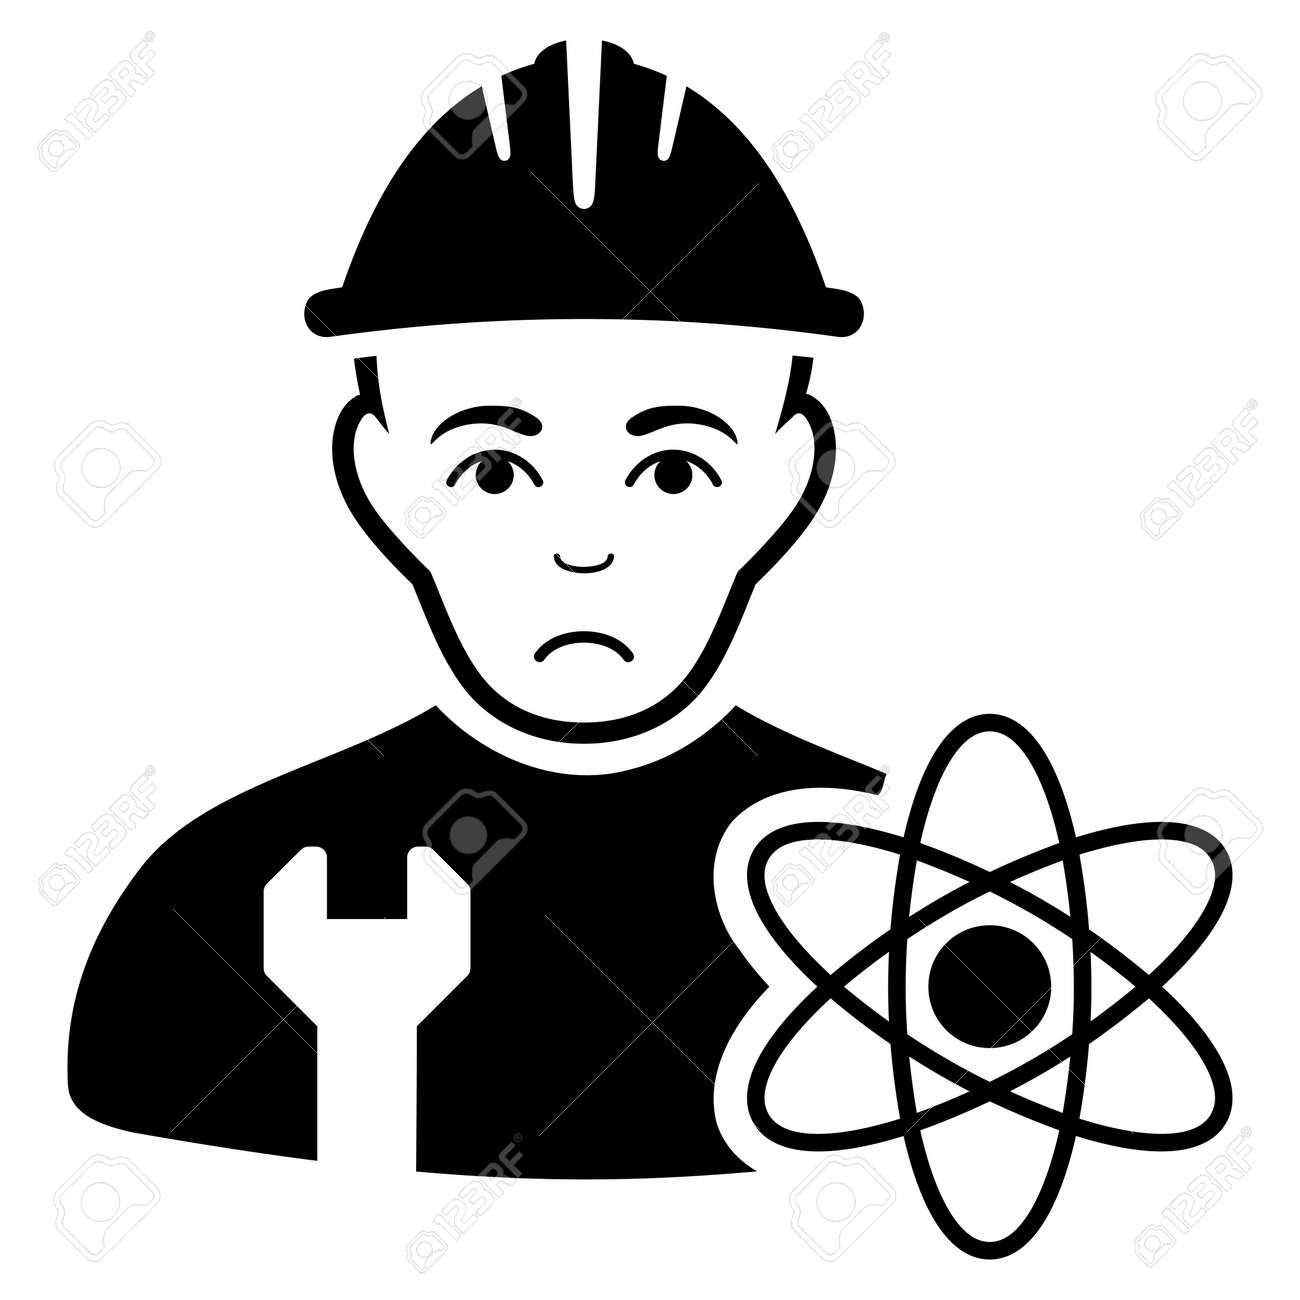 sad scientist engineer vector icon style is flat graphic black royalty free cliparts vectors and stock illustration image 94314936 sad scientist engineer vector icon style is flat graphic black